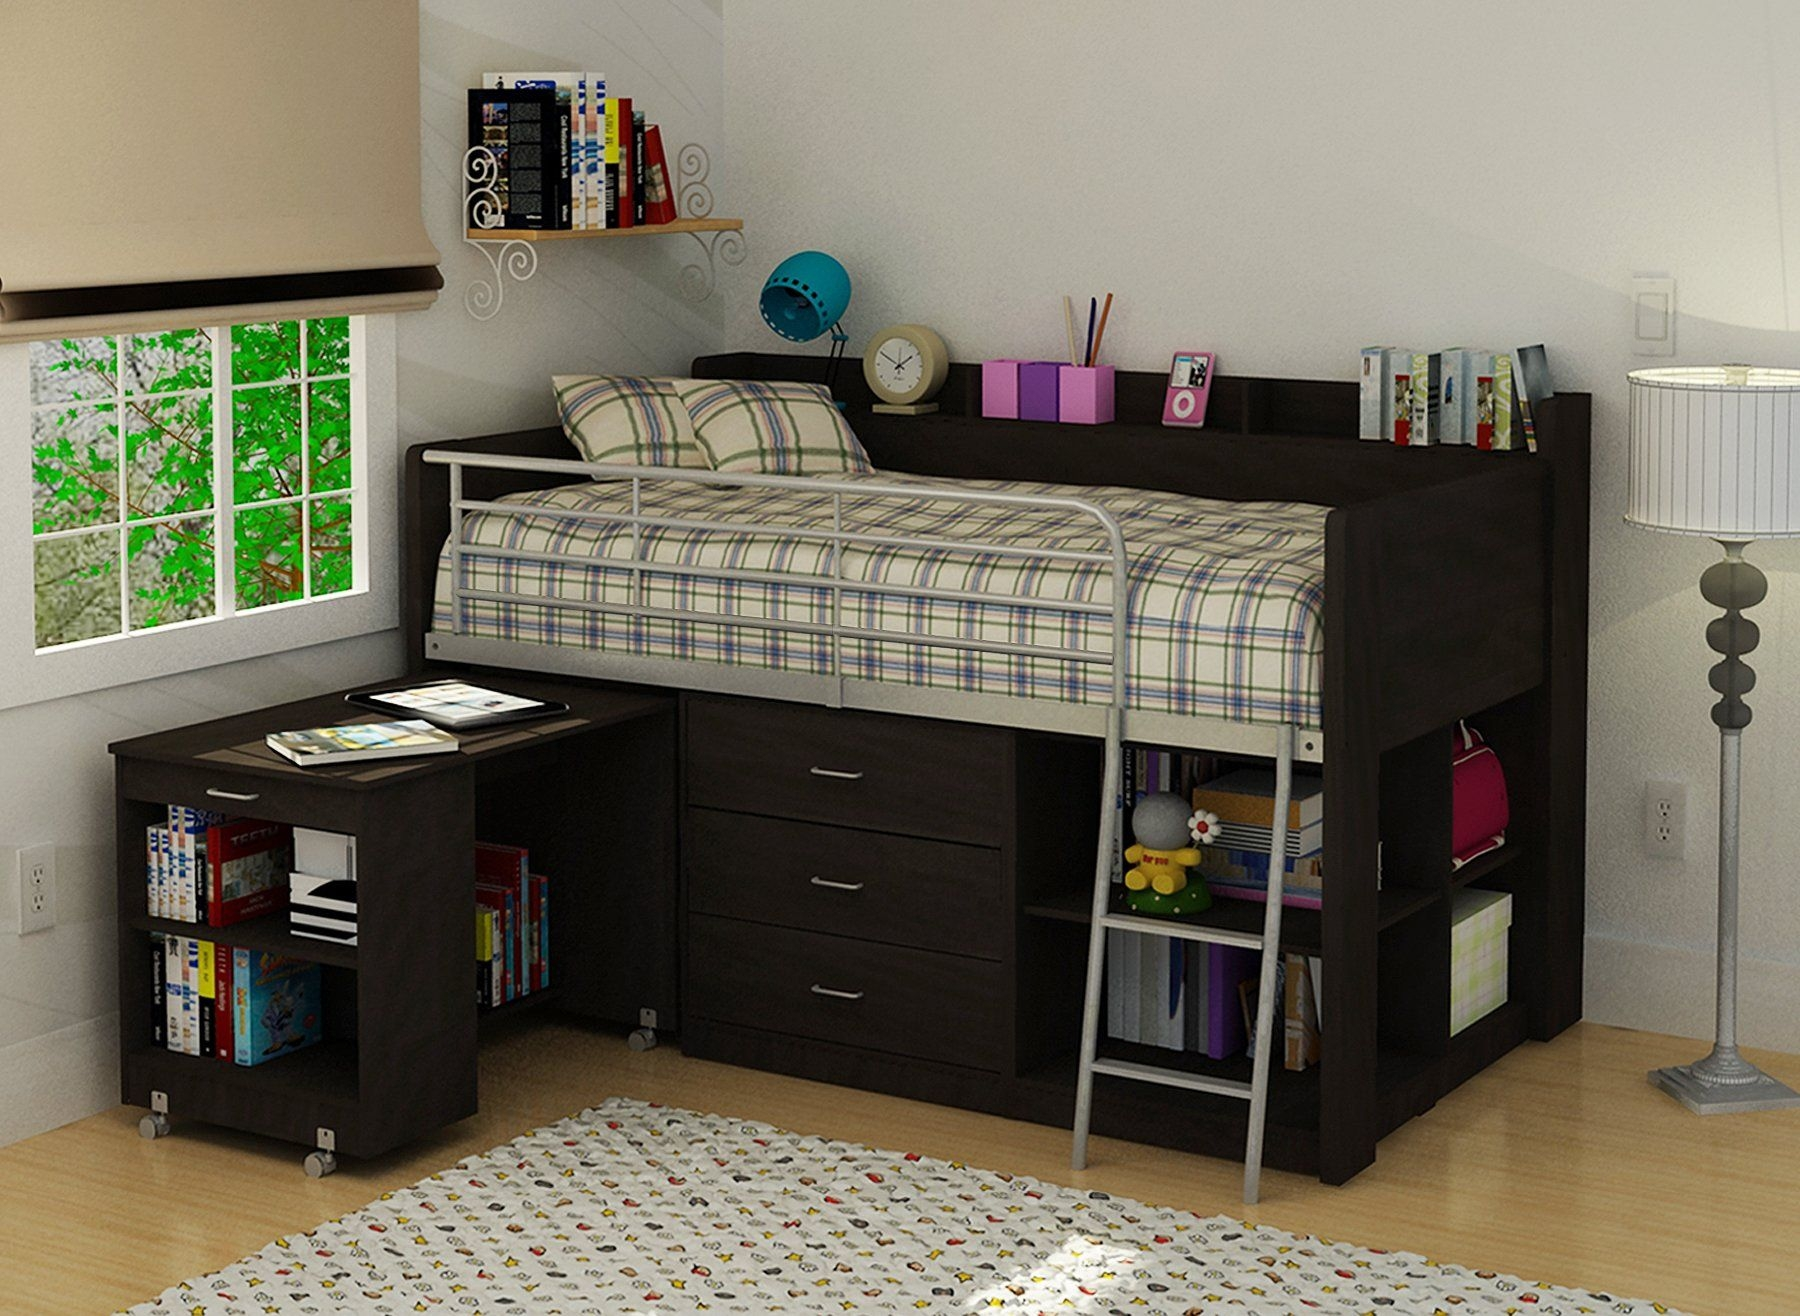 Attirant Bed With Study Table Design